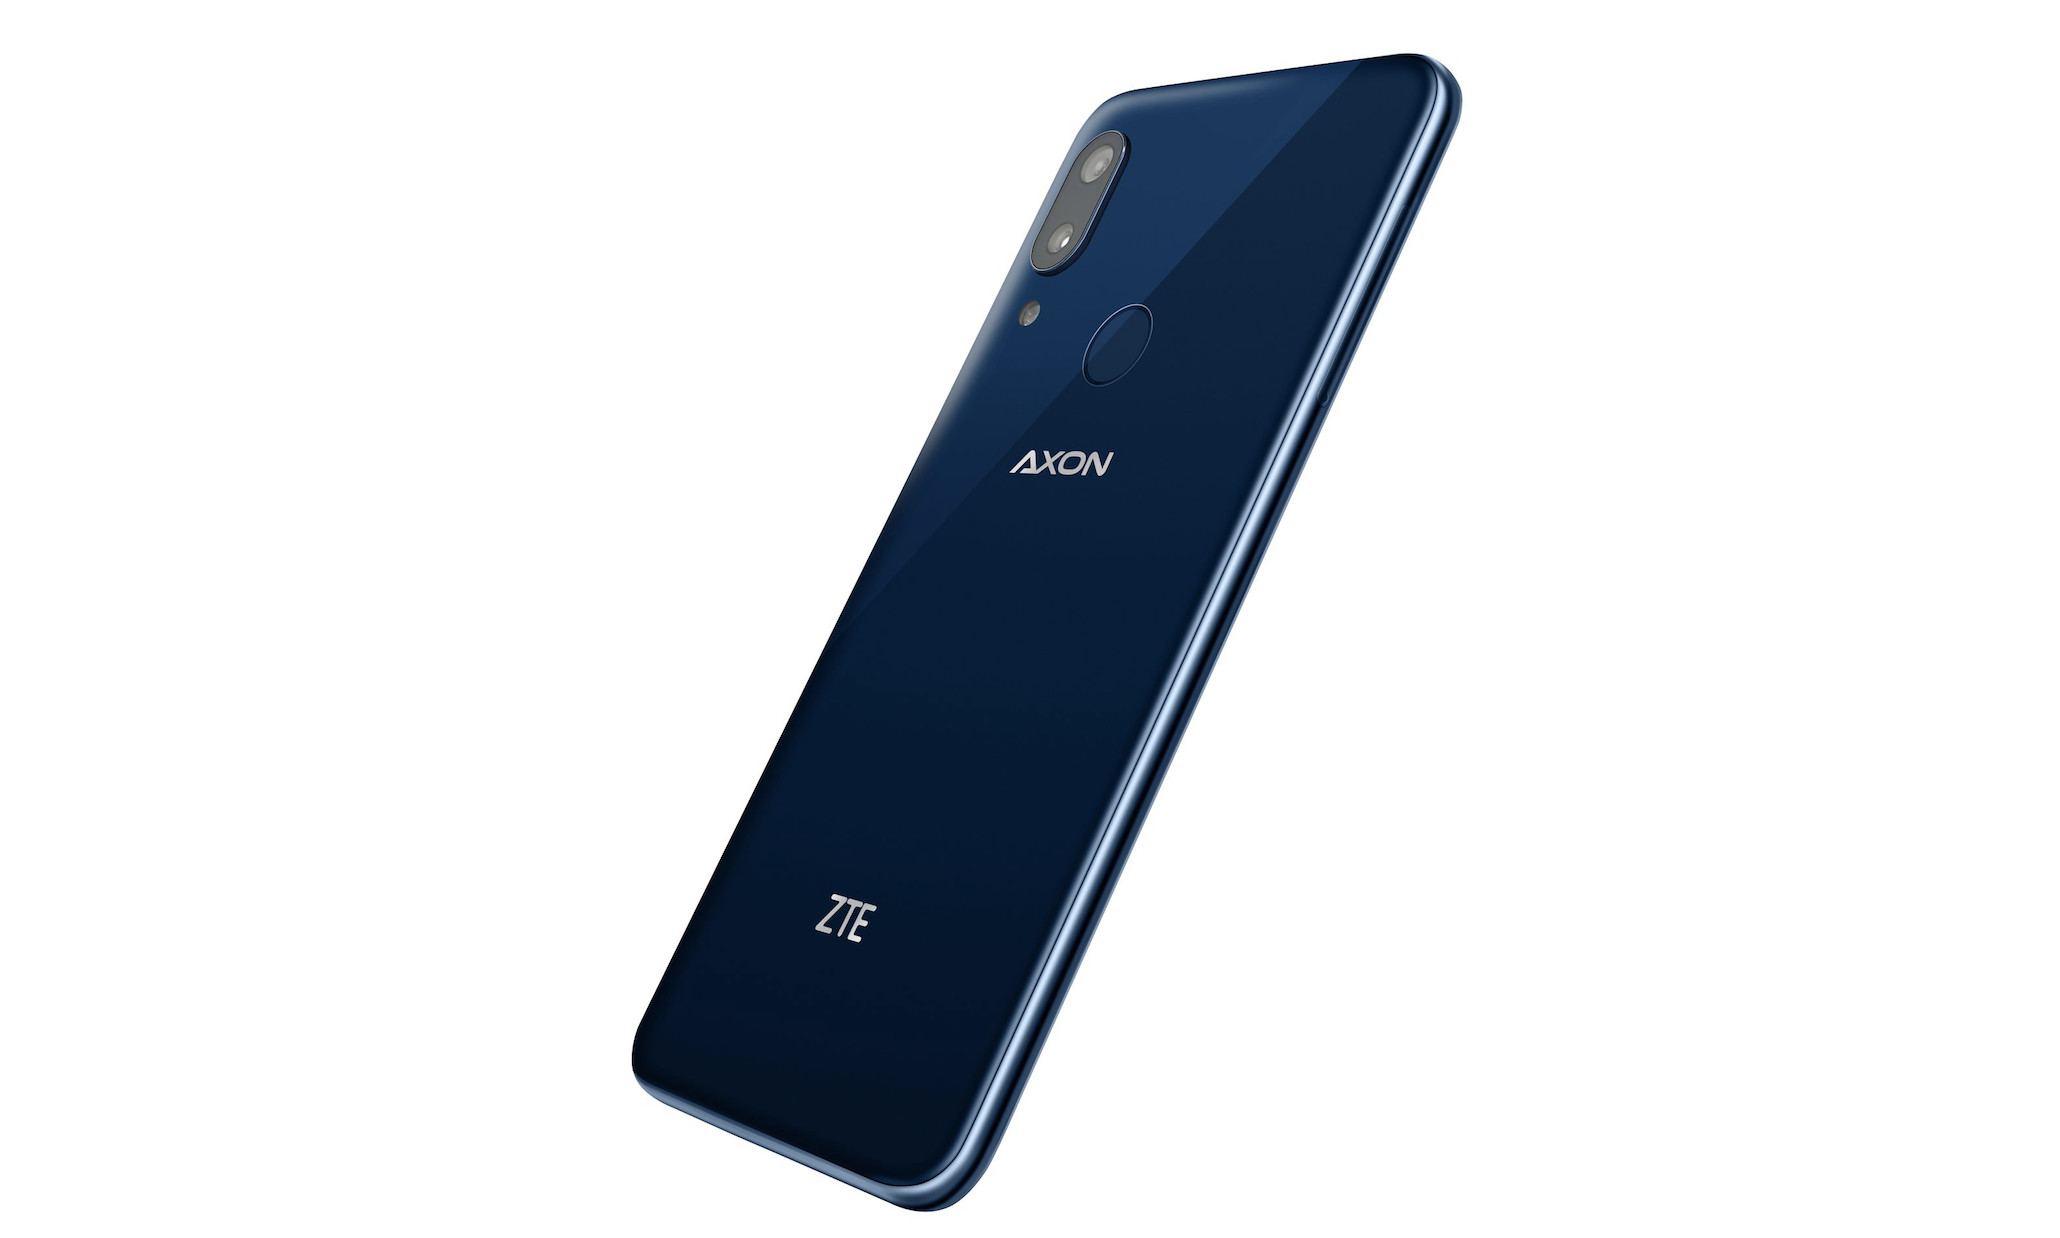 ZTE reveals its first device since being banned, the Axon 9 Pro - Neowin